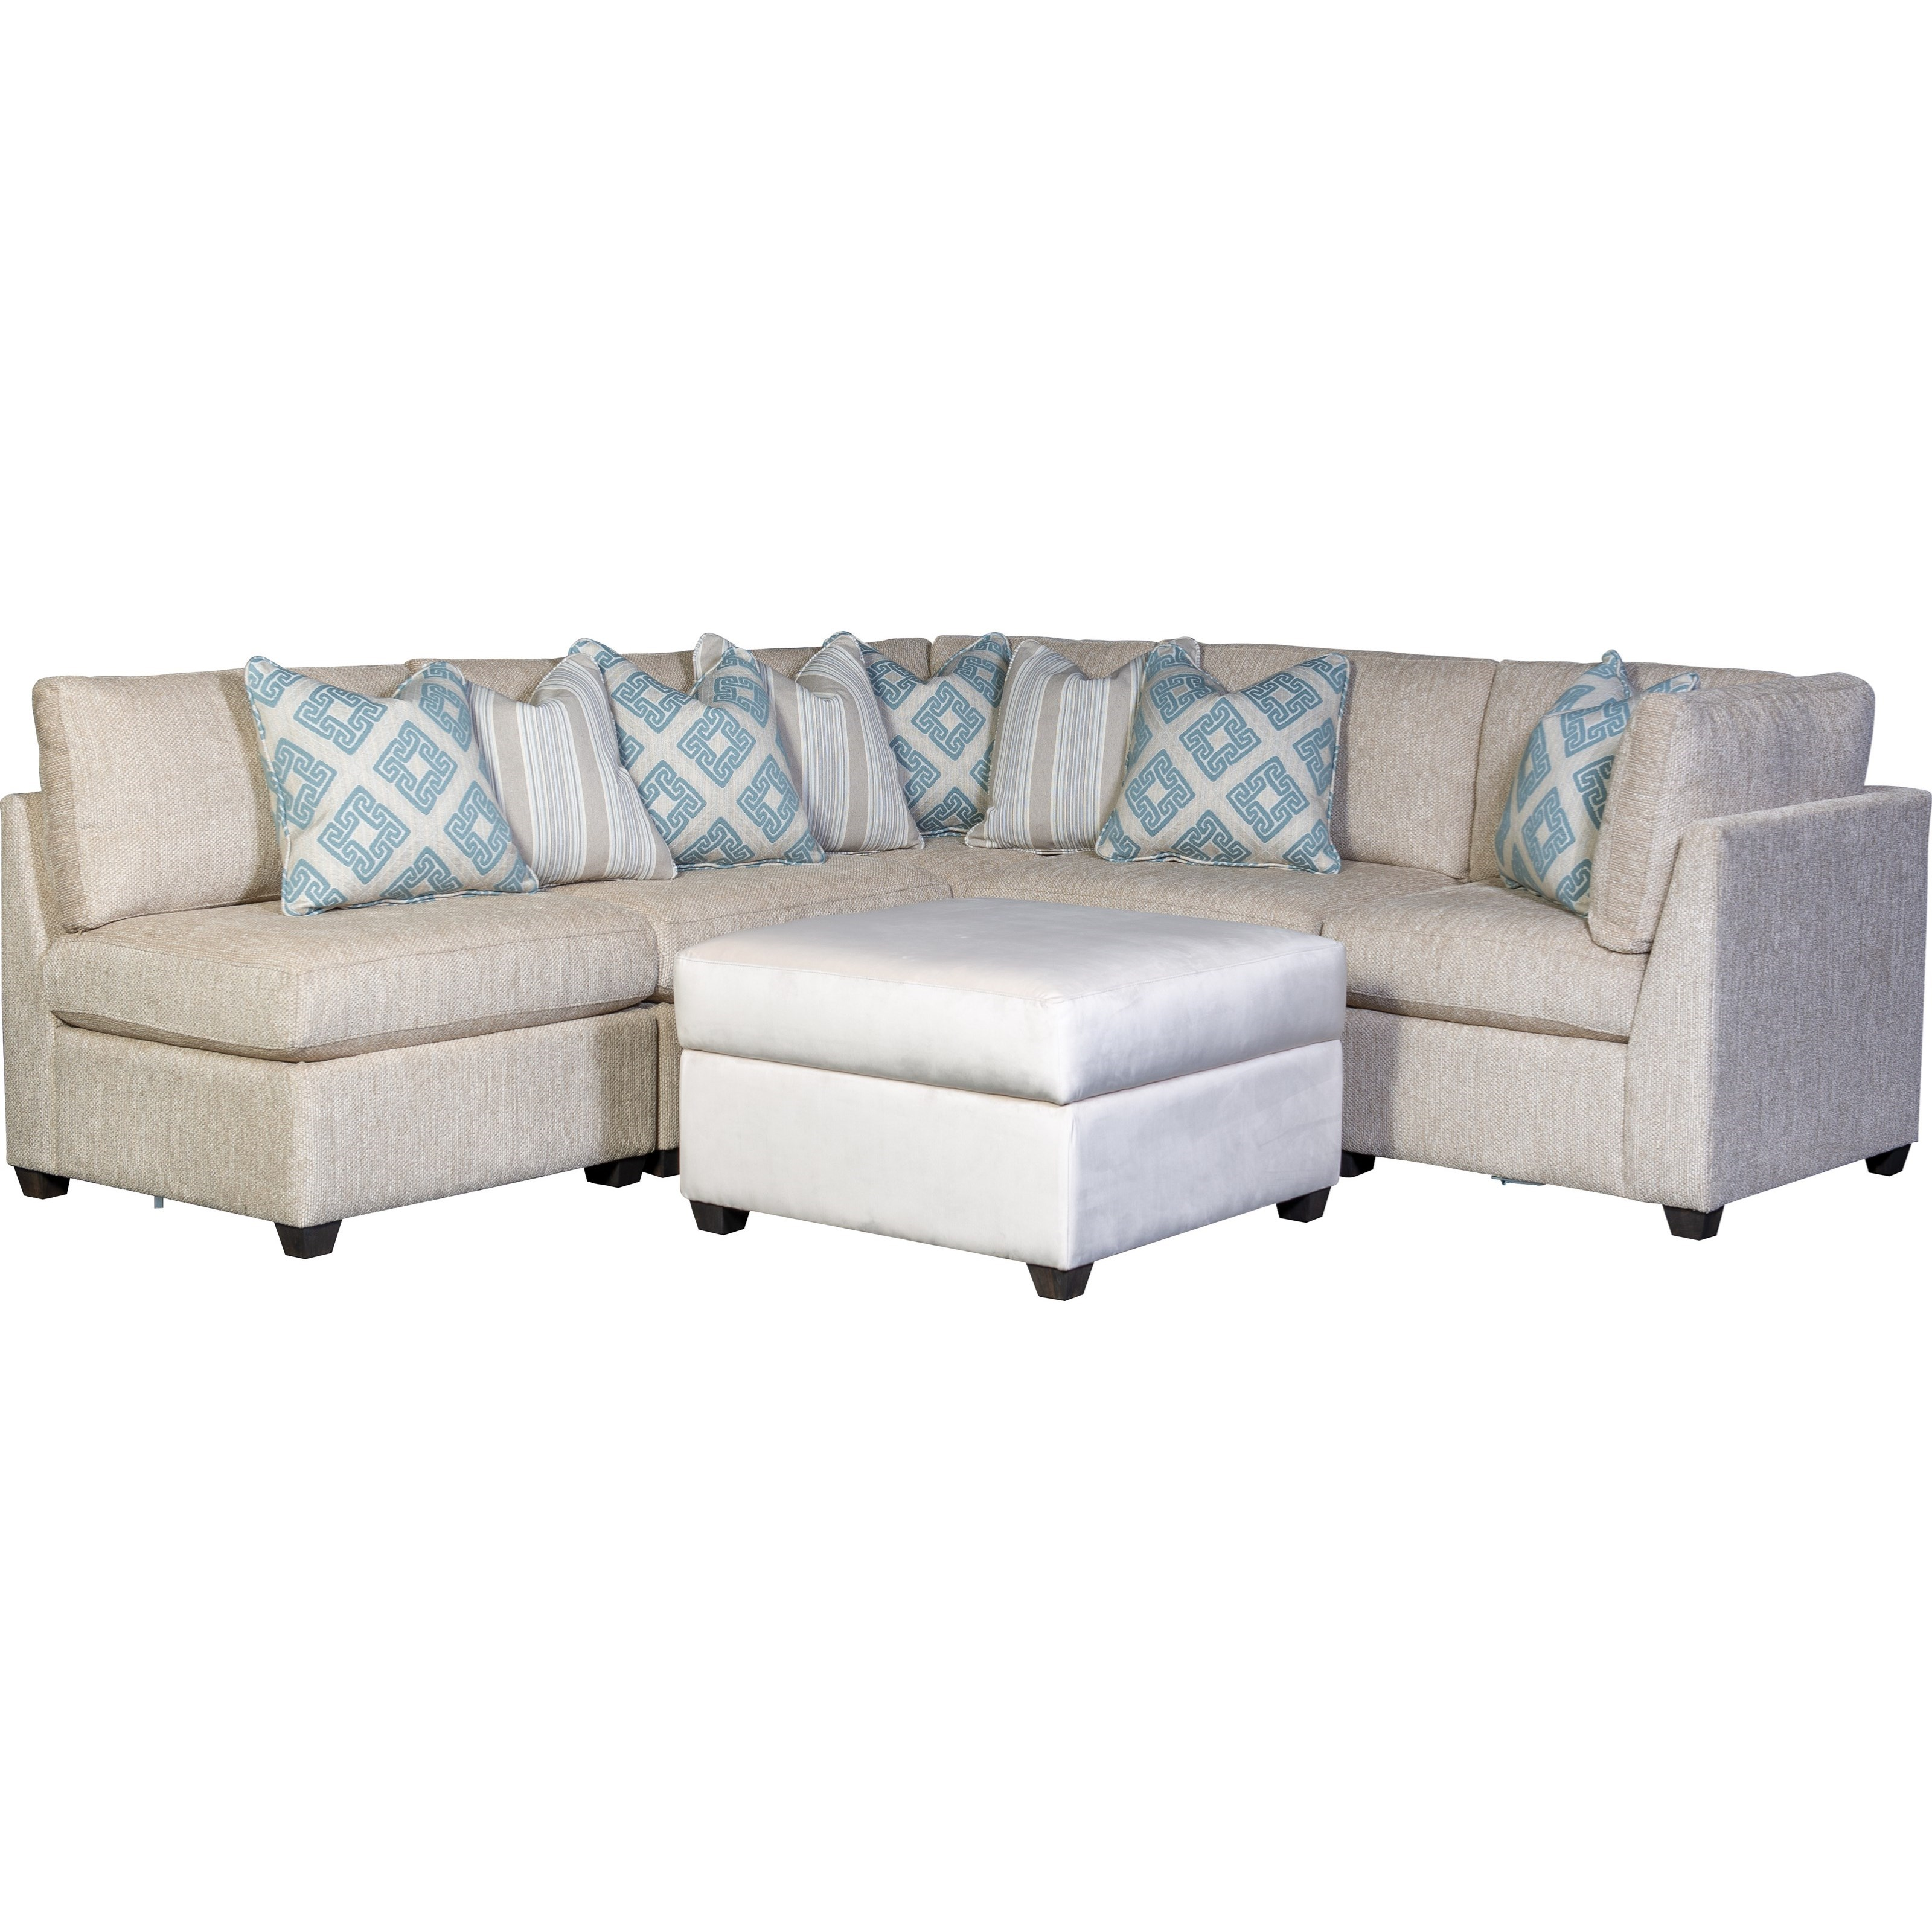 1920 Configurable Sectional by Mayo at Story & Lee Furniture